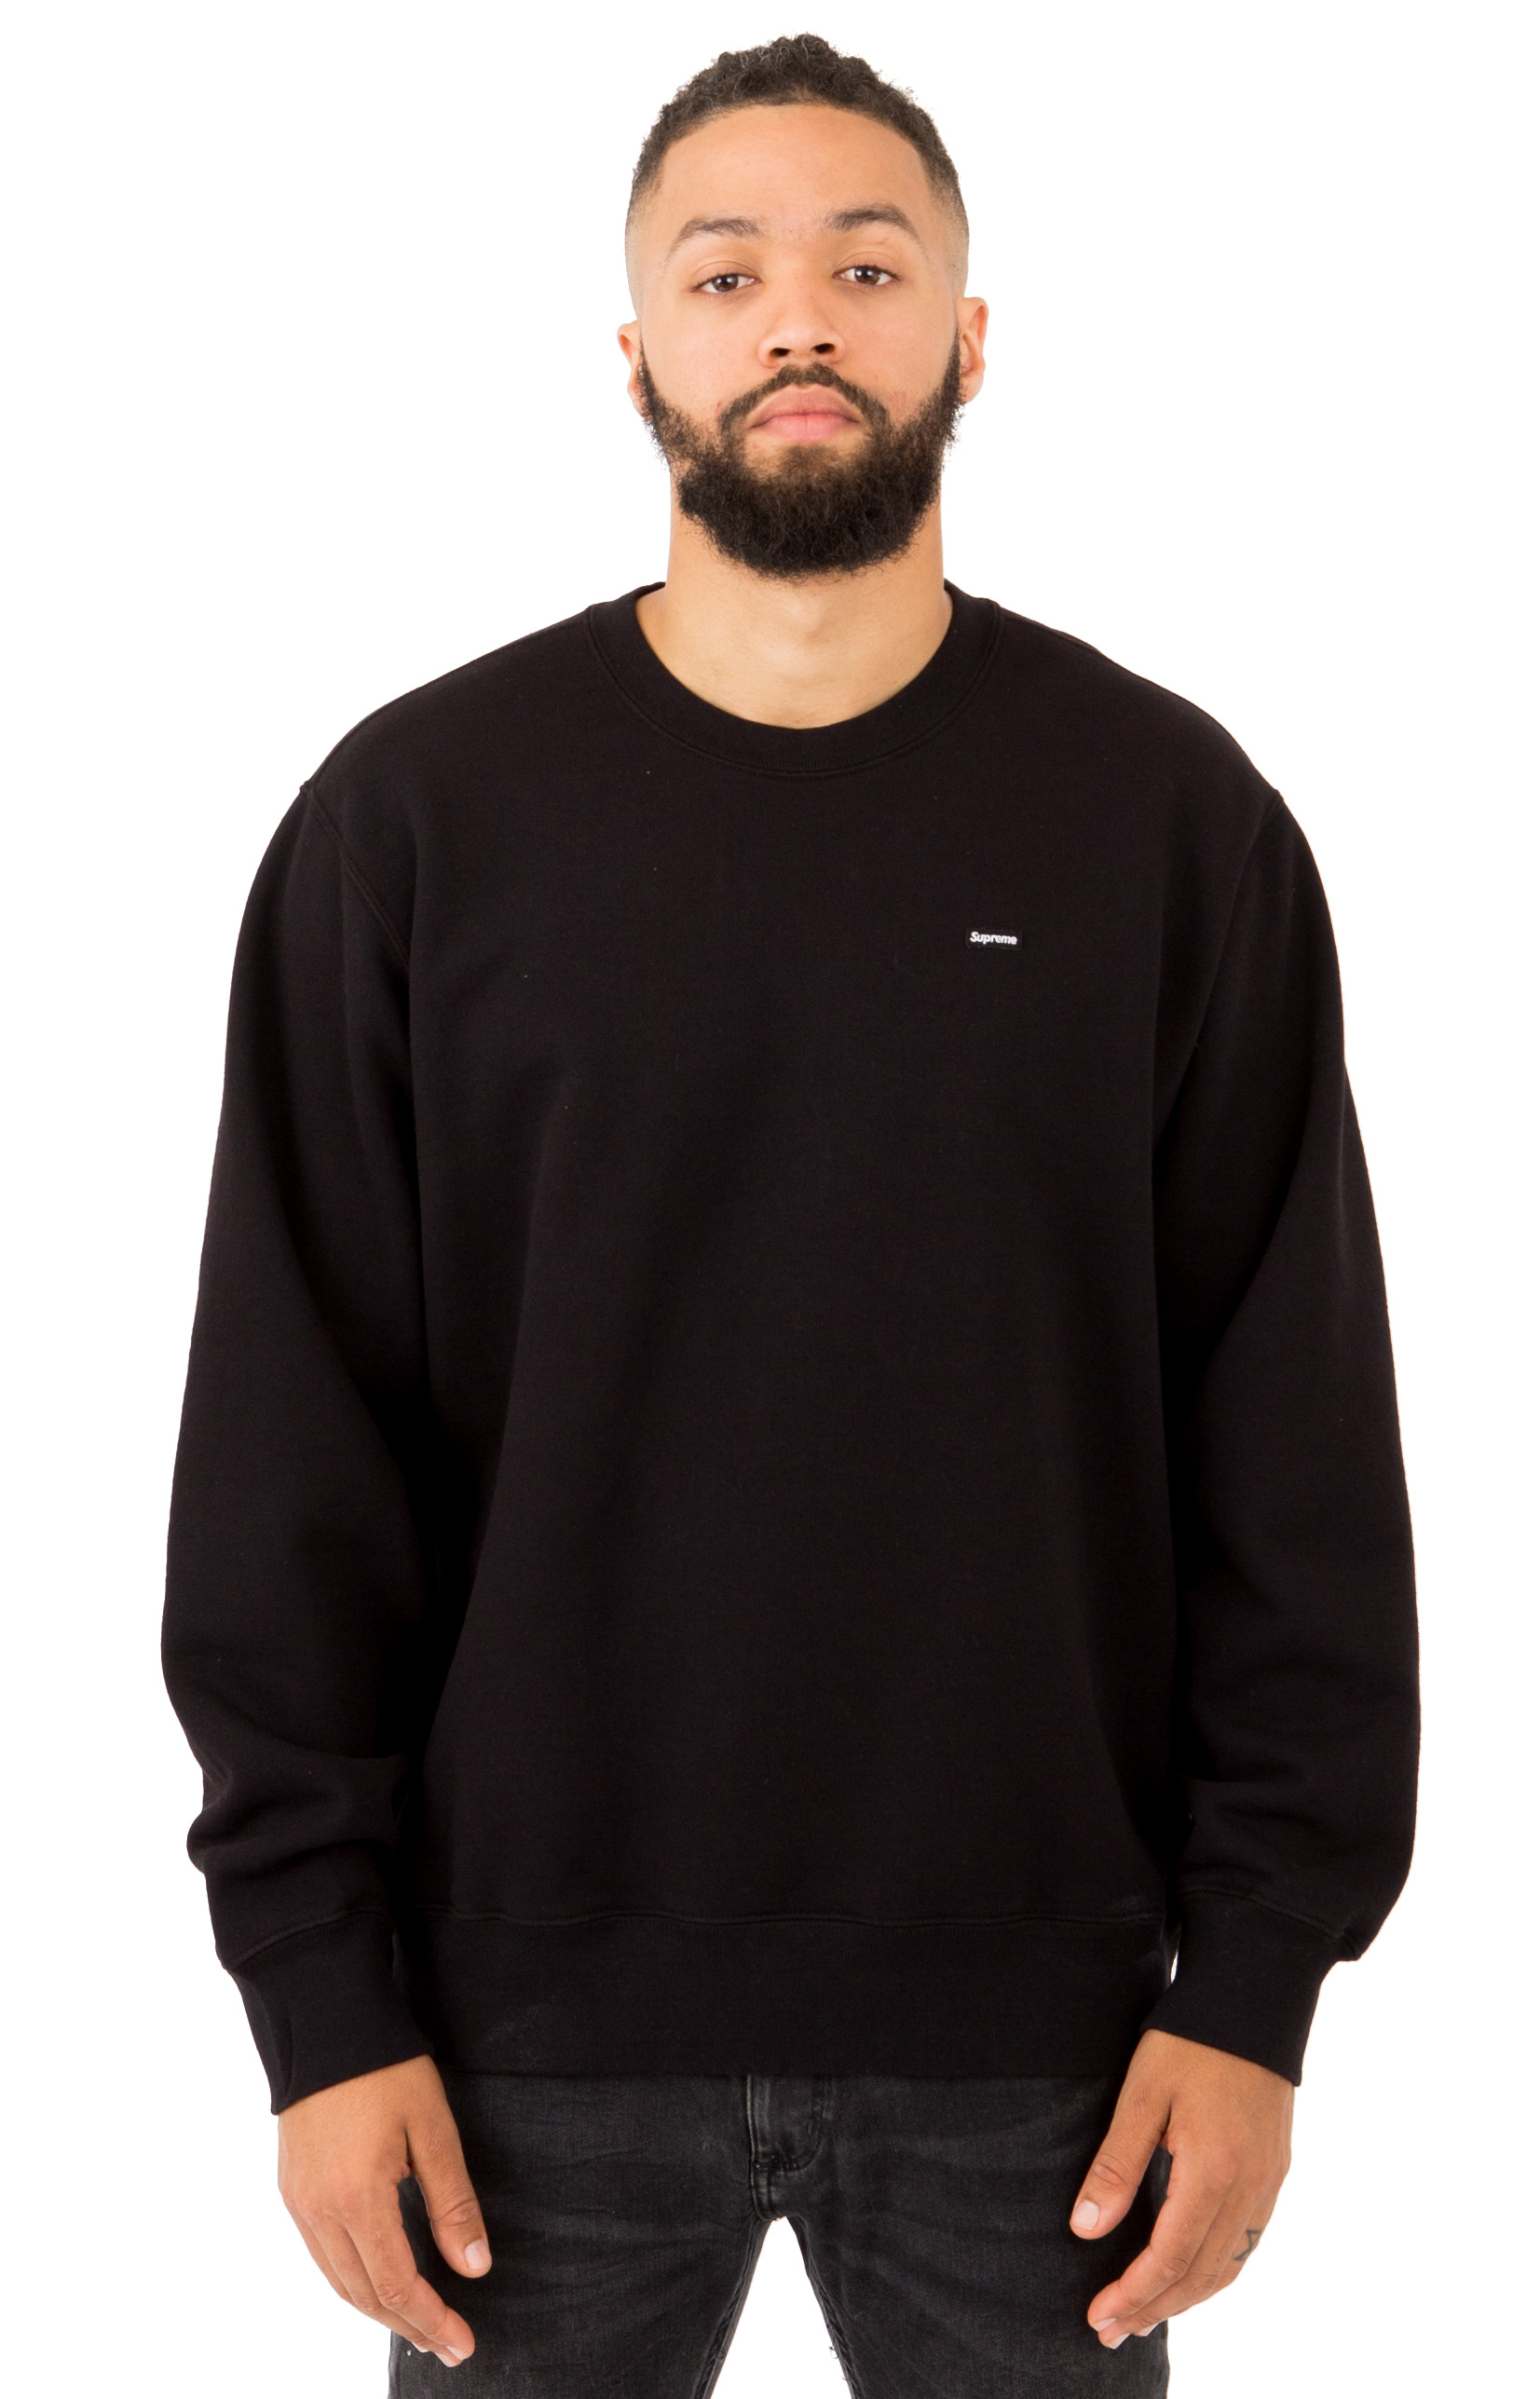 Small Box Contrast Crewneck - Black